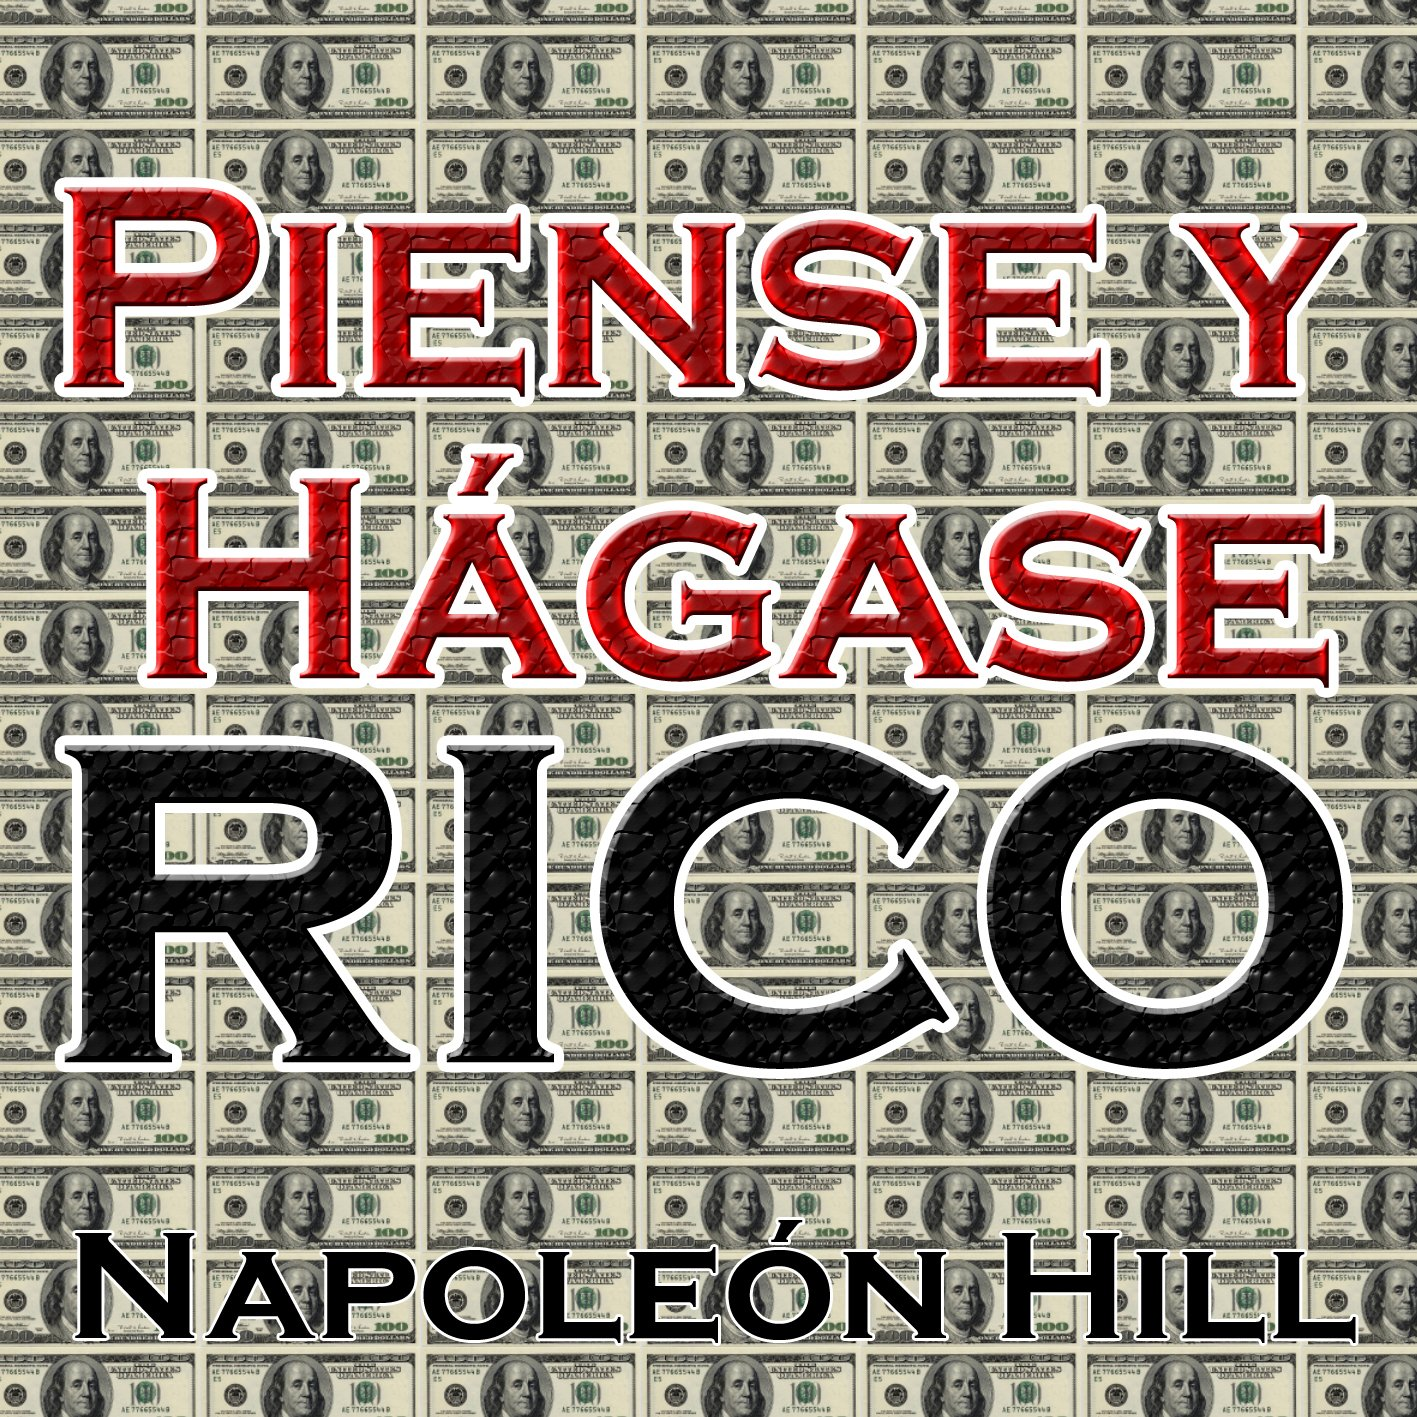 Piense y hgase rico think and grow rich spanish edition piense y hgase rico think and grow rich spanish edition napoleon hill marcelo russo 9789562910323 amazon books fandeluxe